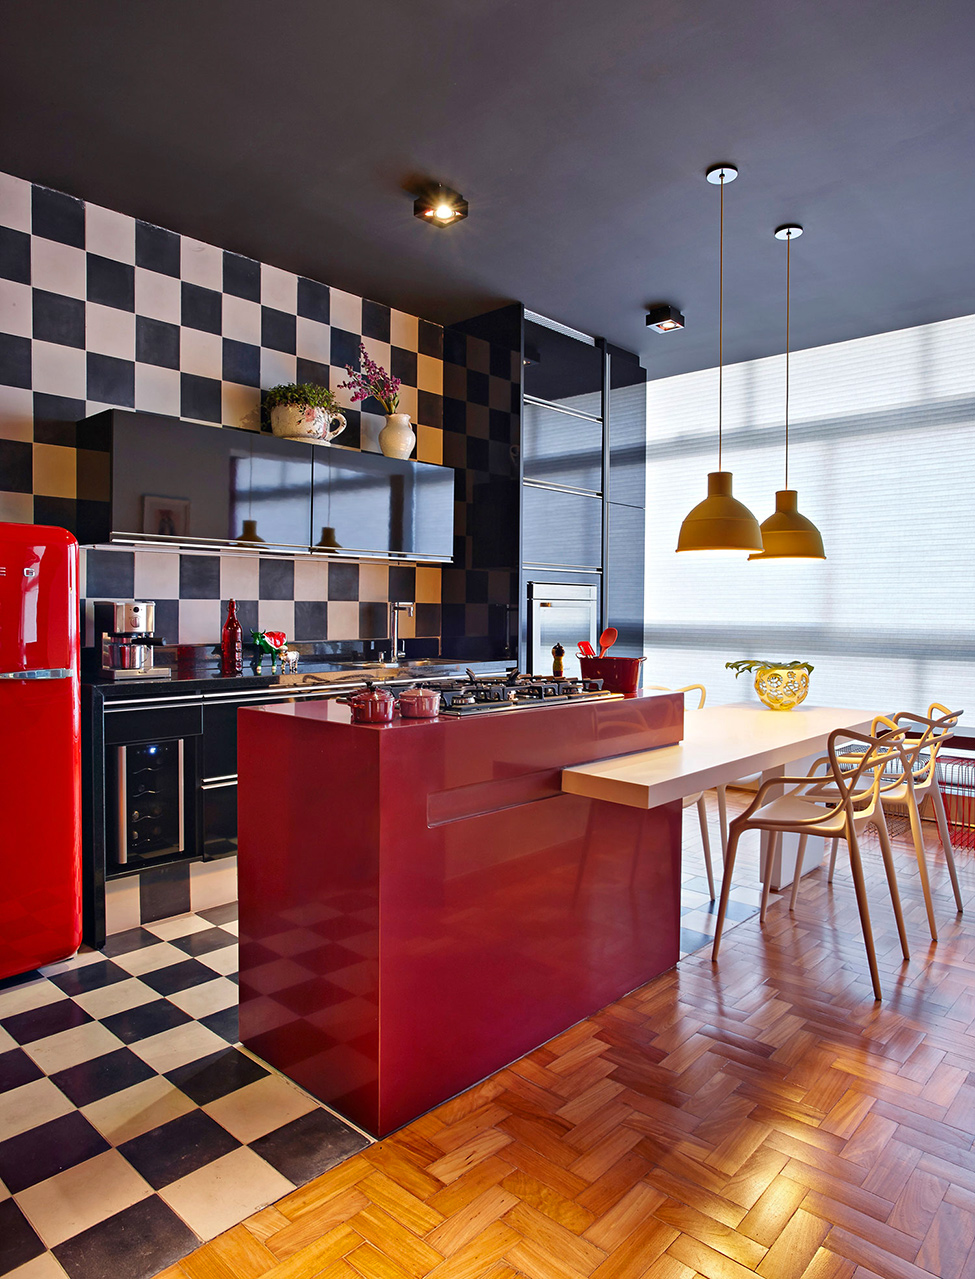 Stunning Black And White Kitchen Interior Design With Dramatic Red Additions Of Kitchen Island And Refrigerator Viahouse Com,Simple Art Deco Graphic Design